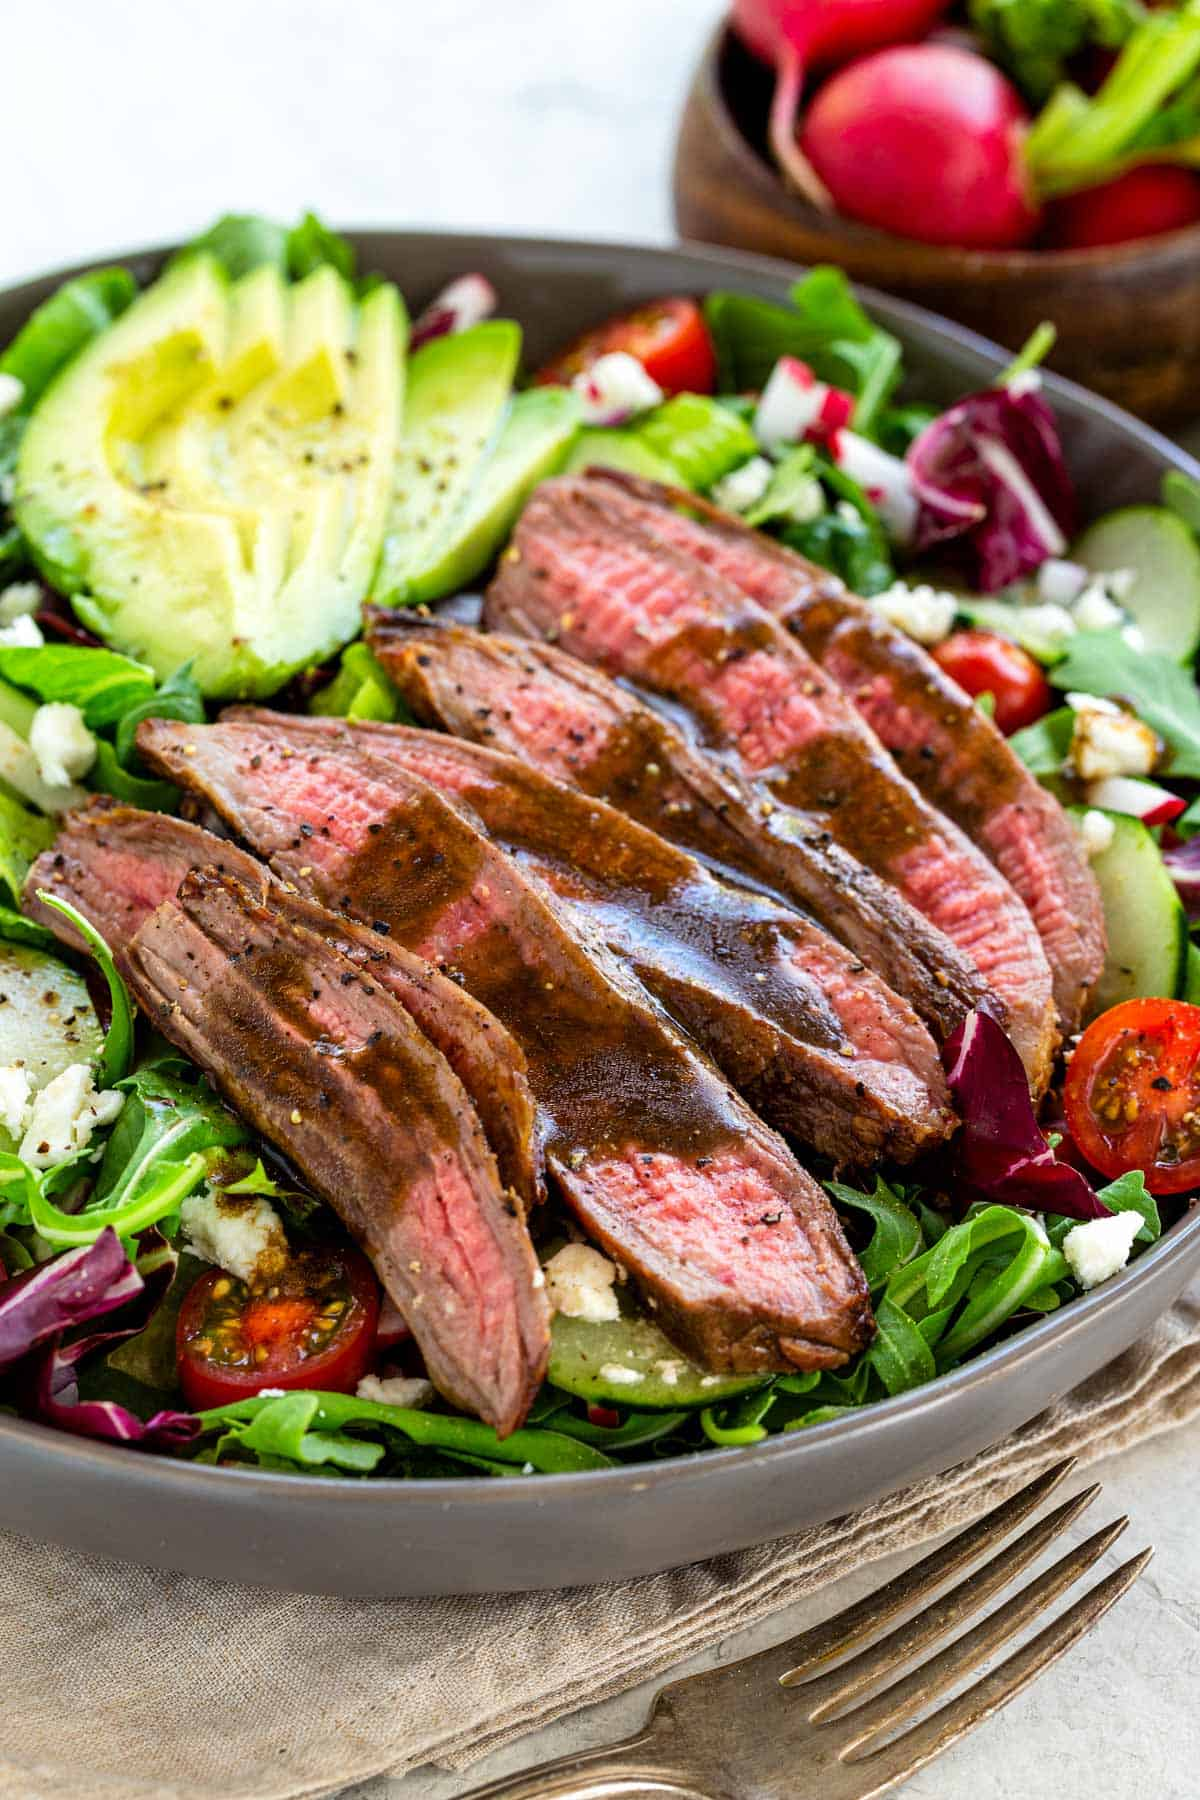 Steak salad with juicy slices of seasoned beef on a bed of colorful greens and crunchy vegetables. Mixed together with a homemade balsamic dressing. #steaksalad #lowcarb #entreesalad